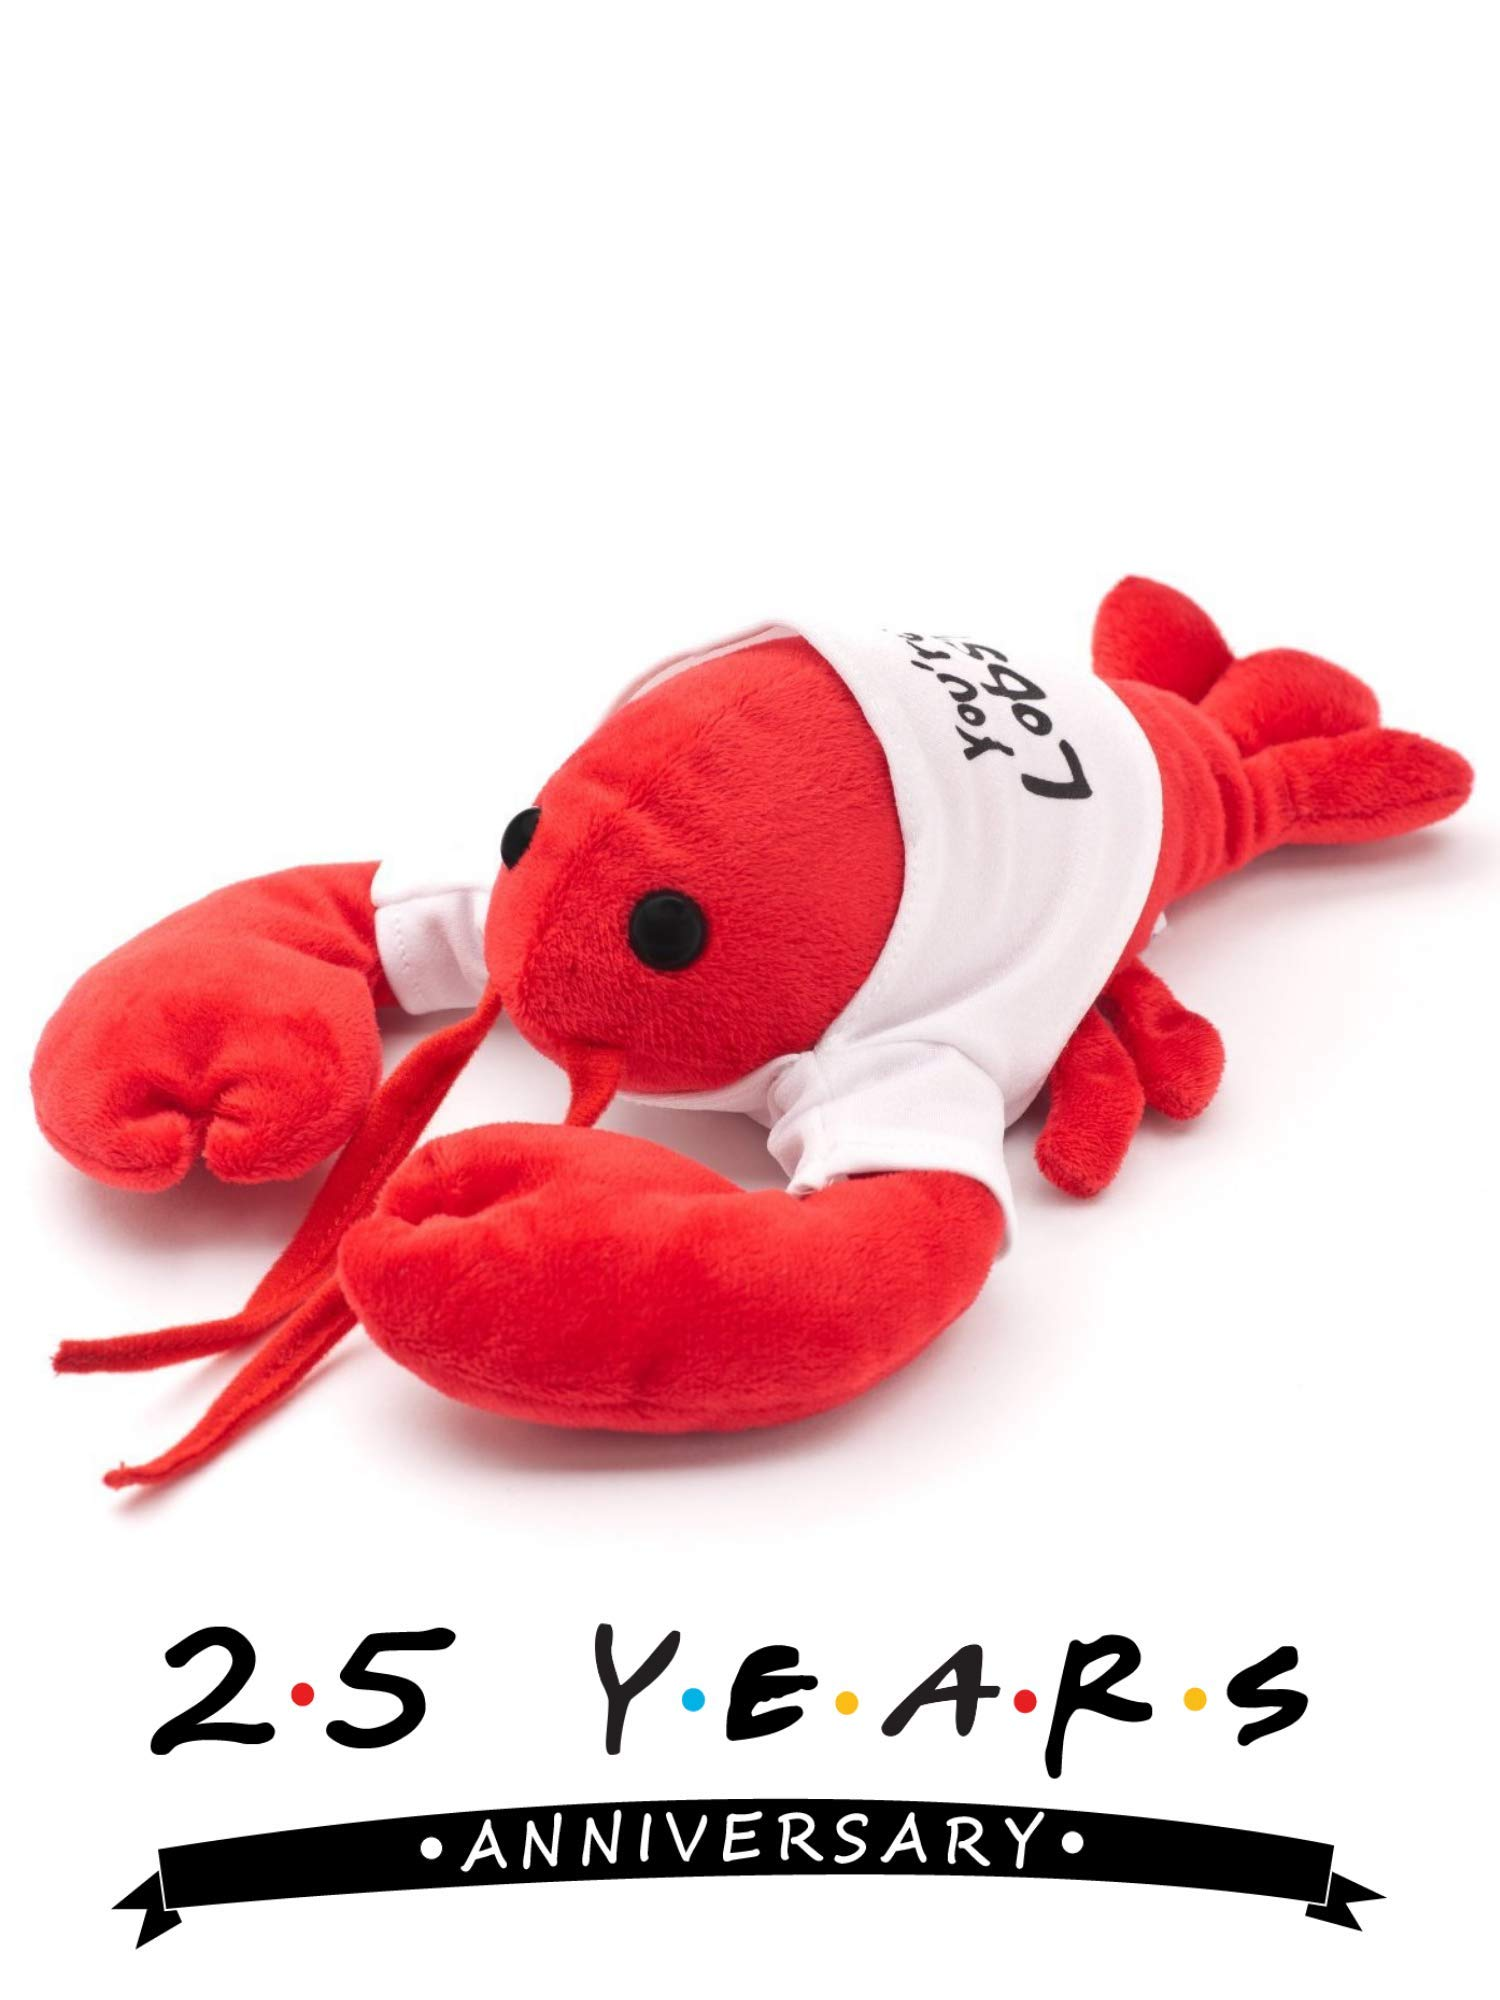 Cool TV Props Friends You're My Lobster Plush Friends Lobster Stuffed Animal Plush - Ross Geller Rachel Green Lobster Stuffed Animal in Cute White T-Shirt - 8'' (20cm) Head to Tail, 6'' (15cm) Claw to by Cool TV Props